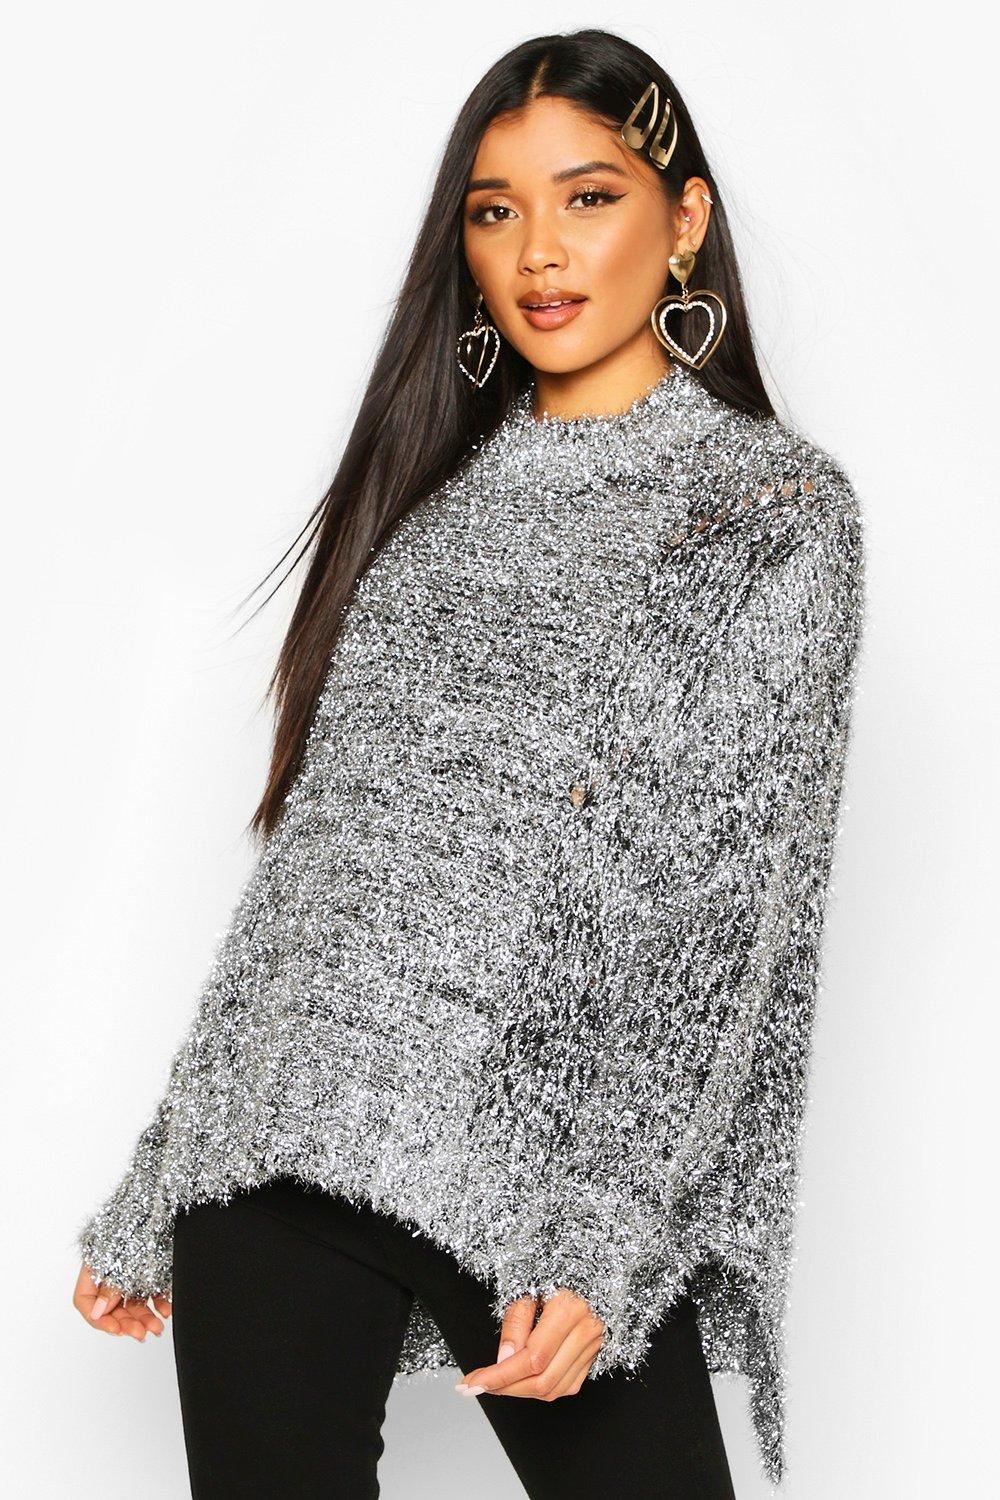 Womens Oversize Pullover mit Flitter - silber - S/M, Silber - Boohoo.com